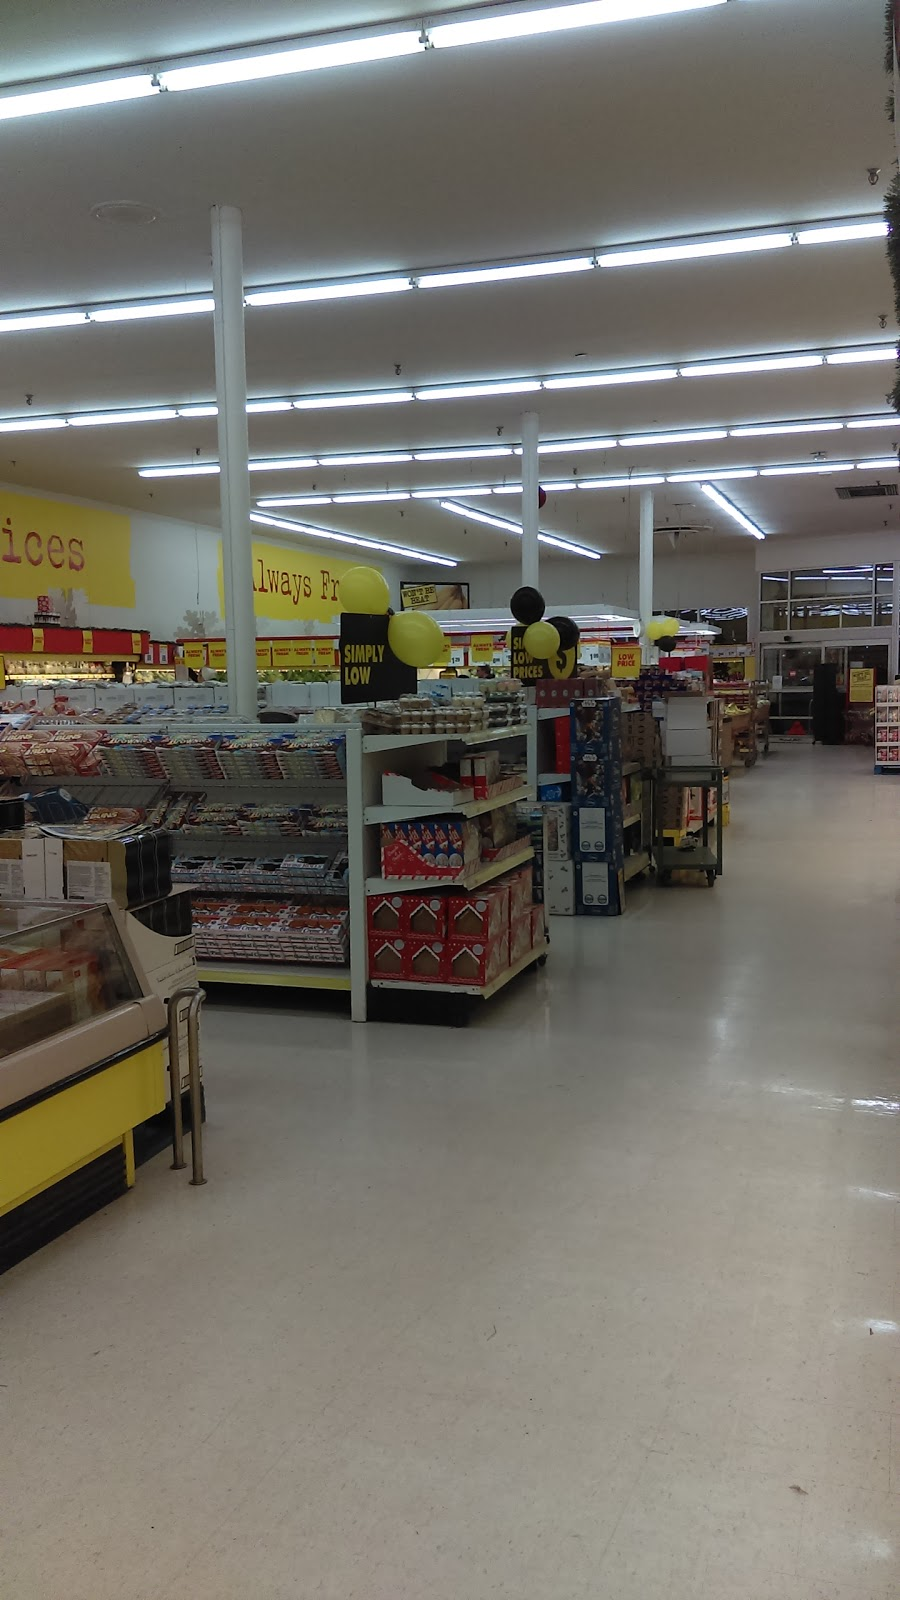 Gouthros No Frills | bakery | 118 Wyse Rd, Dartmouth, NS B3A 1N7, Canada | 8669876453 OR +1 866-987-6453